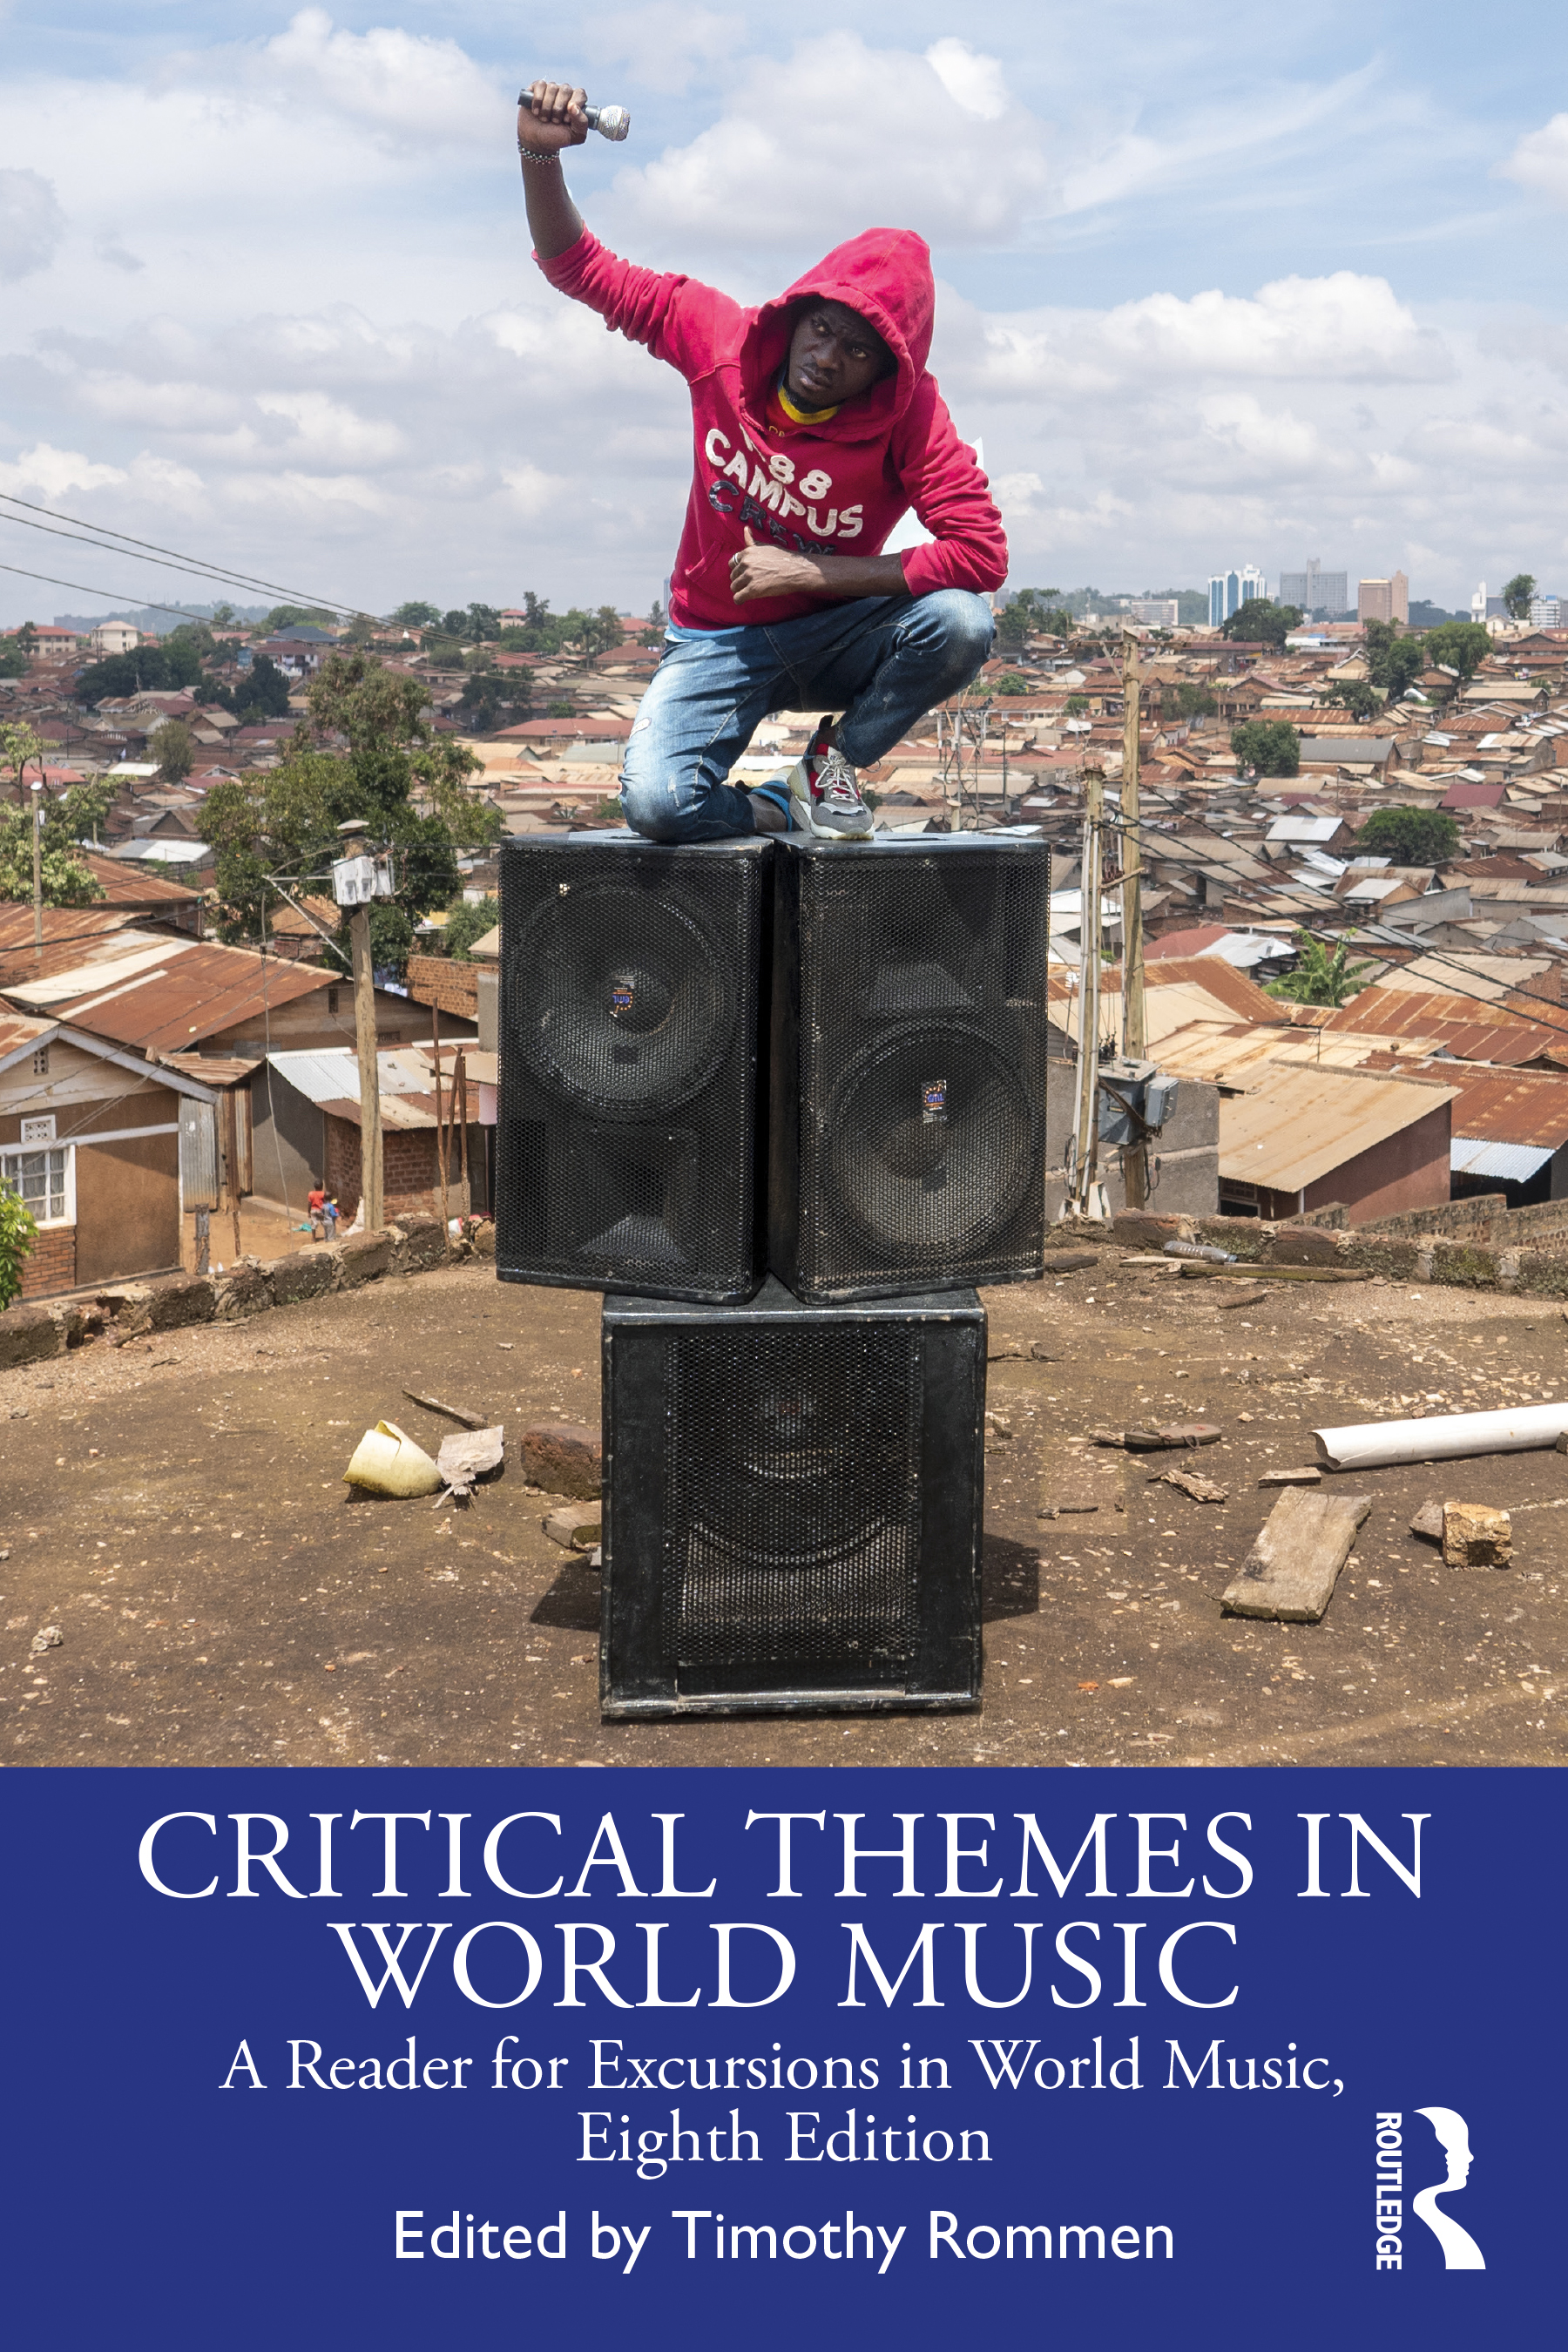 Critical Themes in World Music: A Reader for Excursions in World Music, Eighth Edition book cover